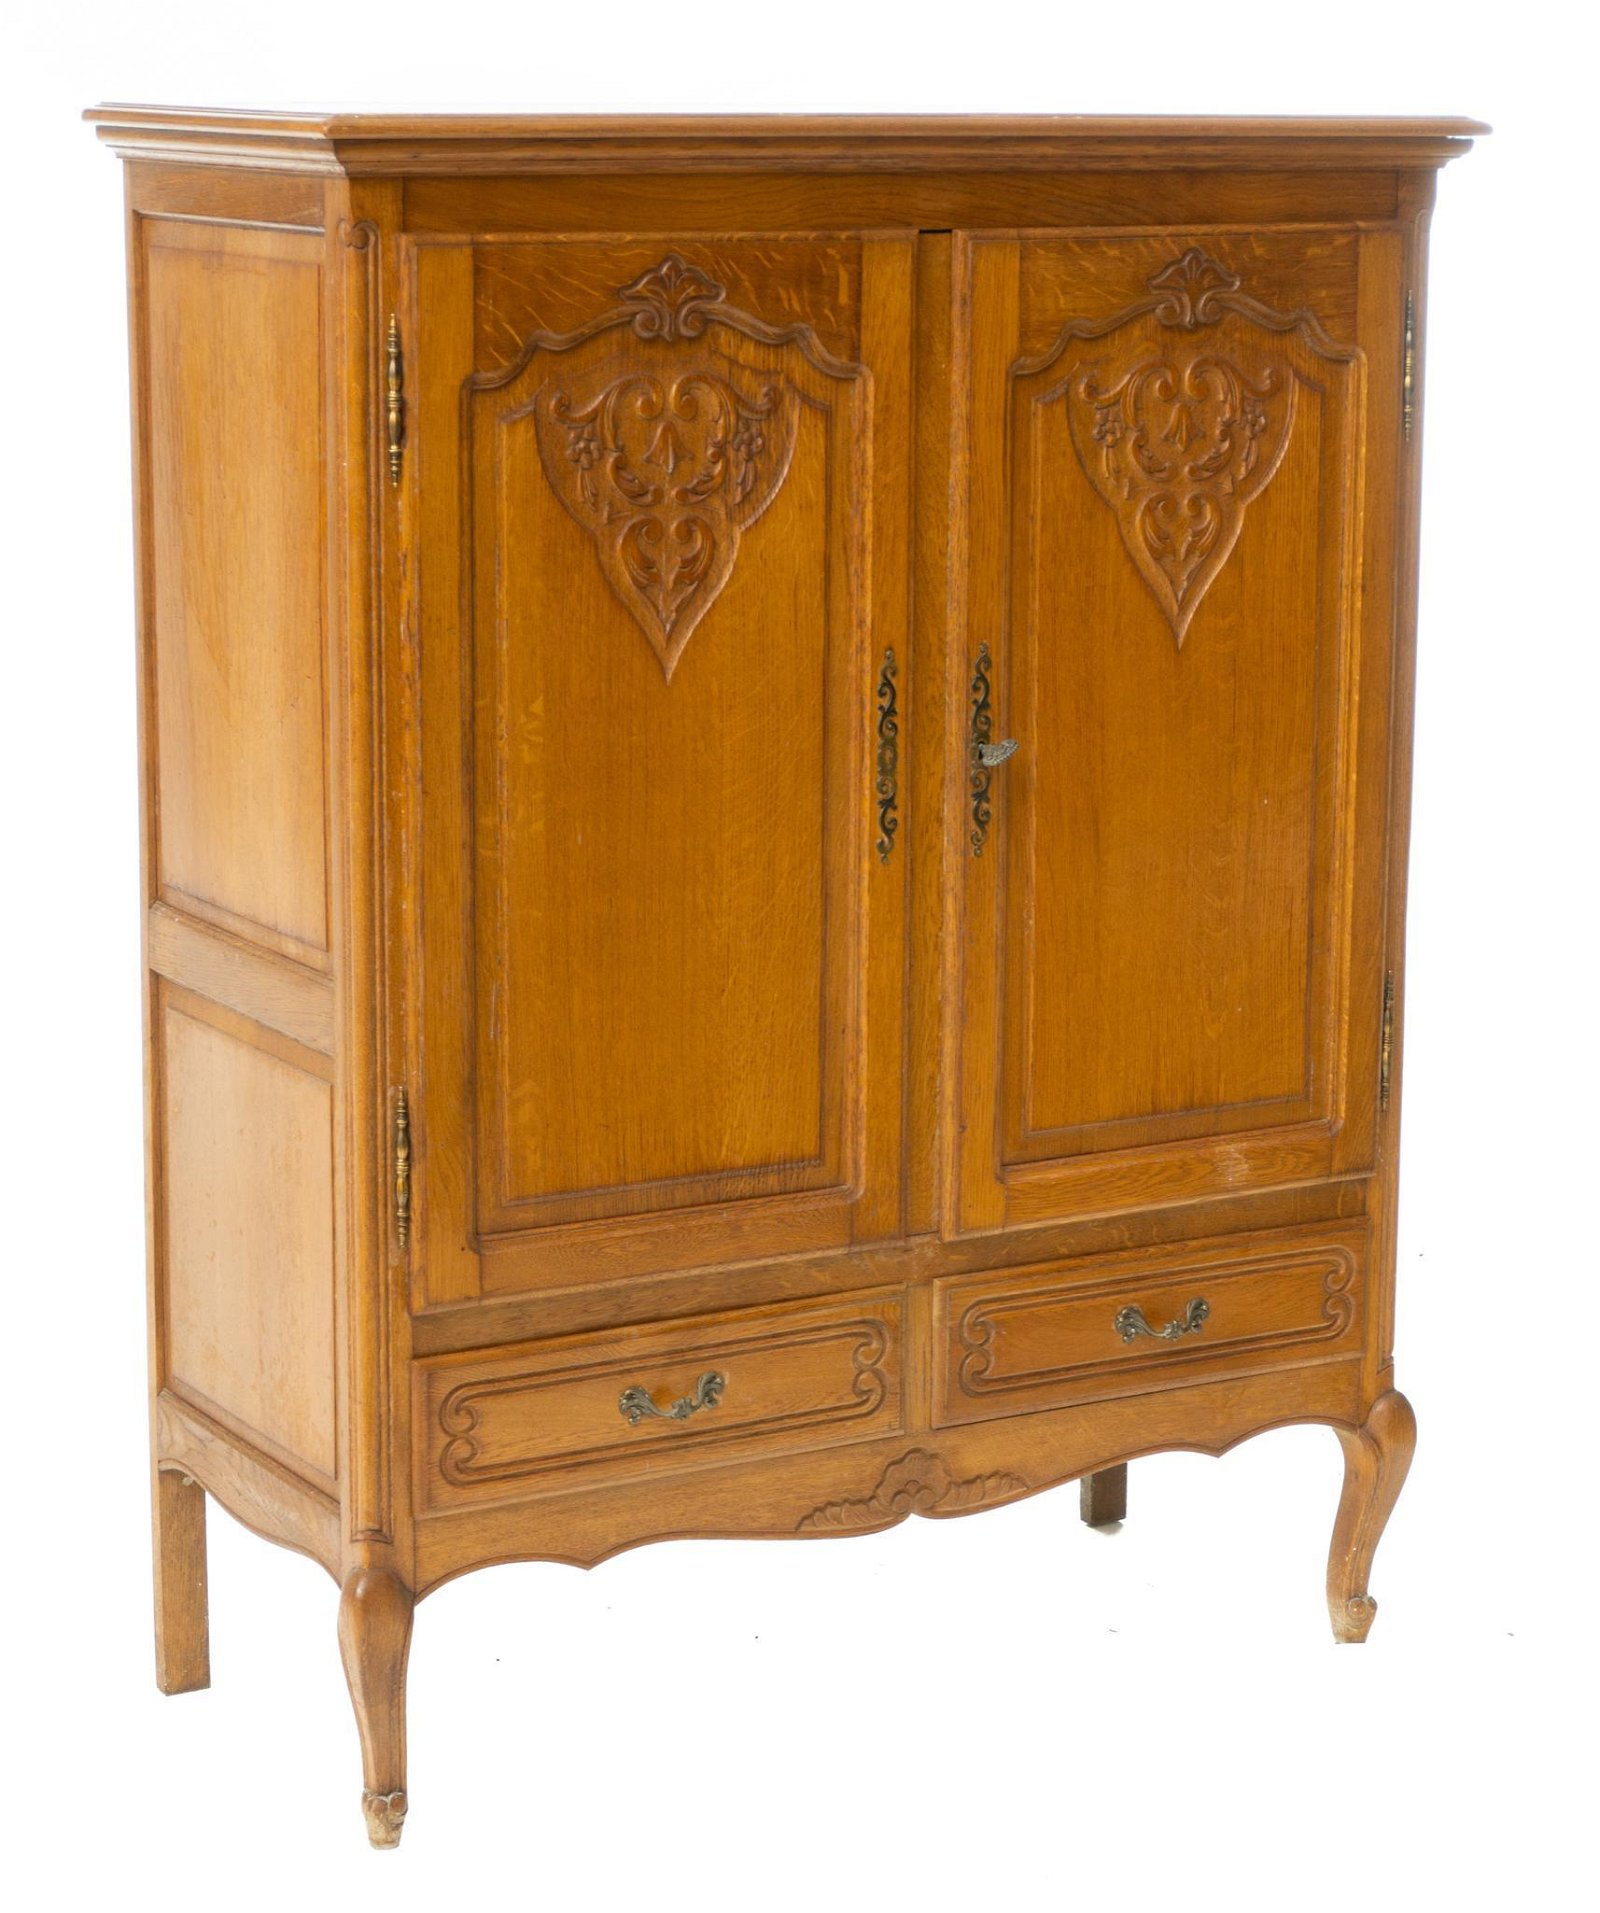 French Provincial-Style Linen Cabinet